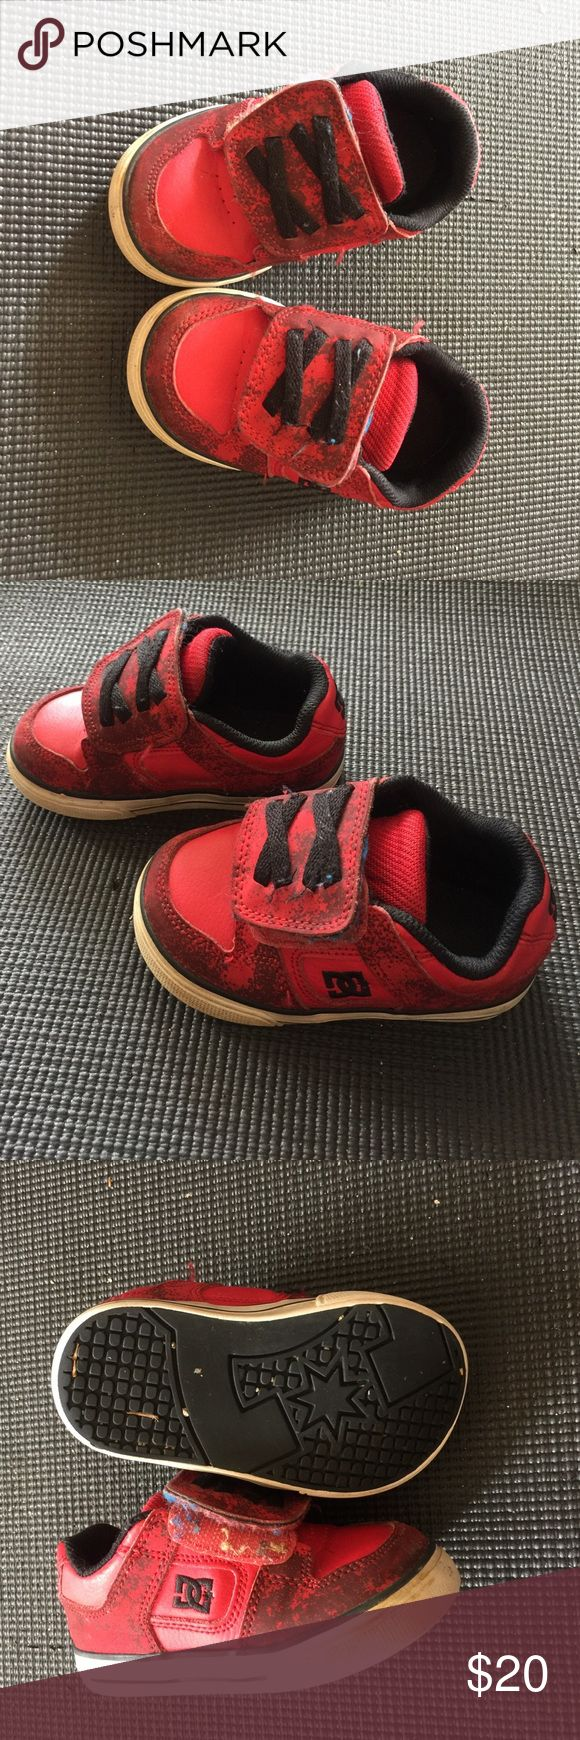 Toddler Boys DC Skate Shoes Velcro Red 6 Toddler red DC shoes size 6. Good condition. Boys grow out of them fast! DC Shoes Sneakers